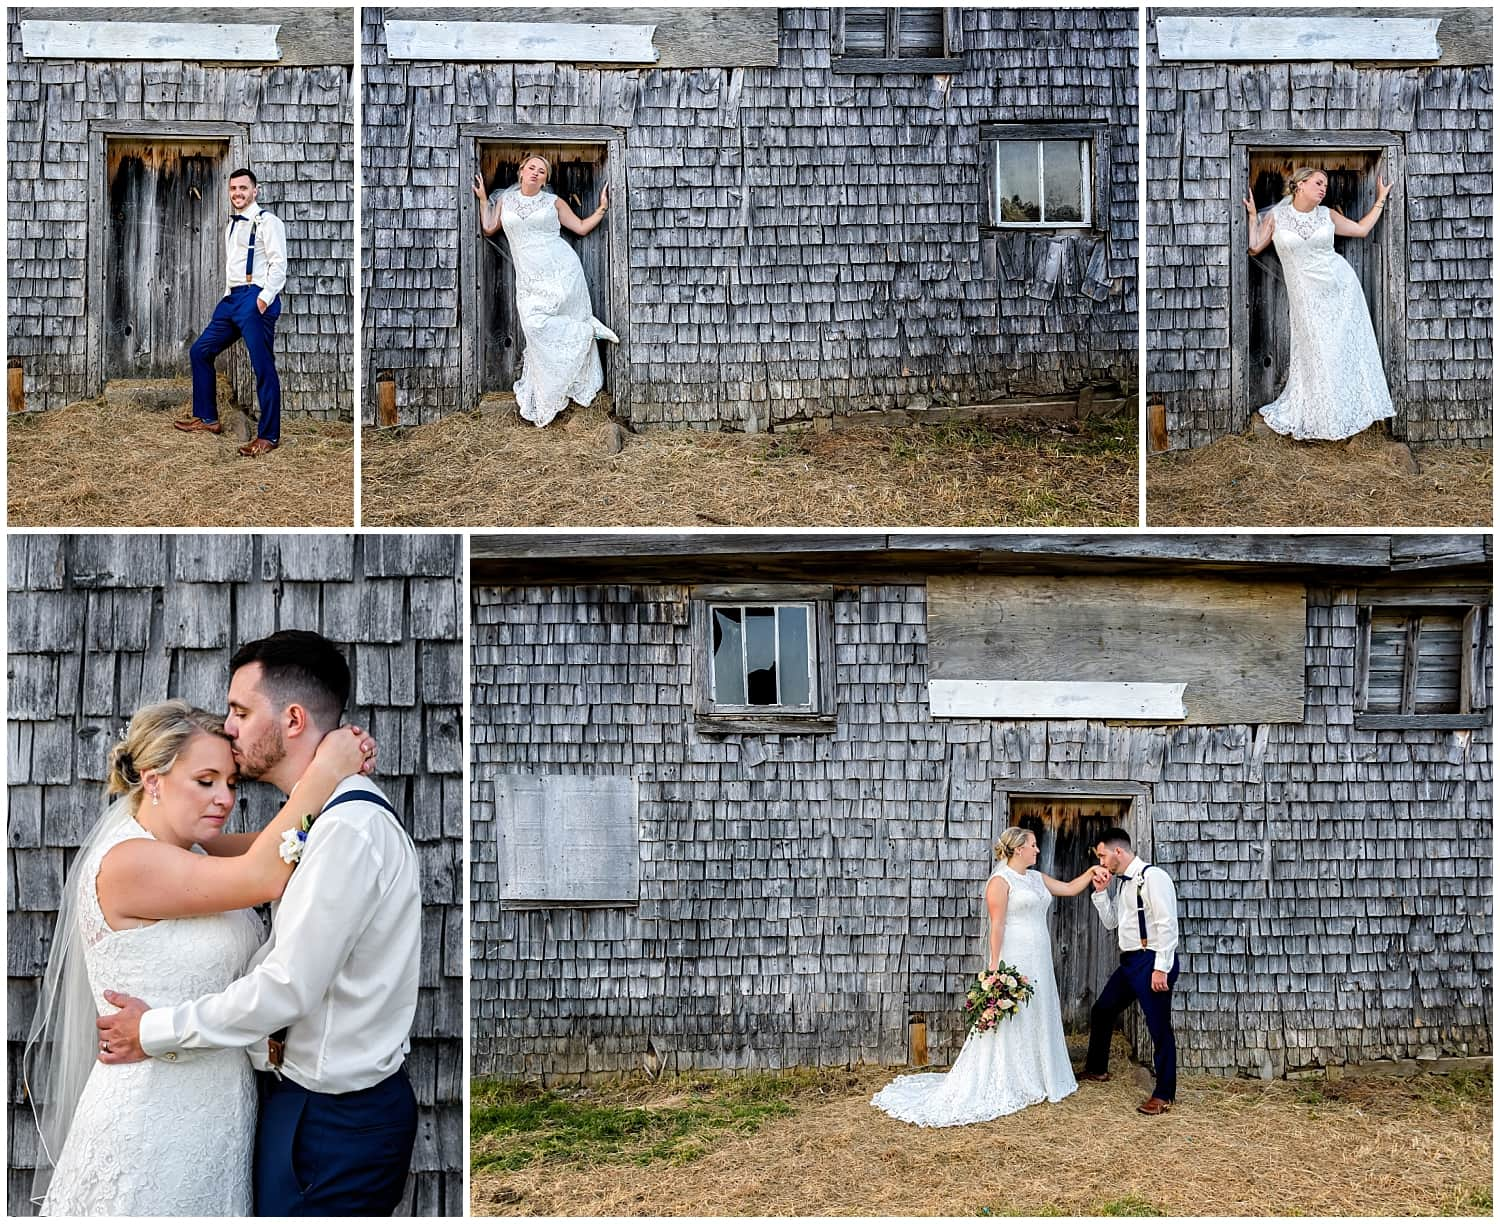 The bride and groom pose for wedding photos at the Barn at Sadie Belle Farm in Hantsport, NS.